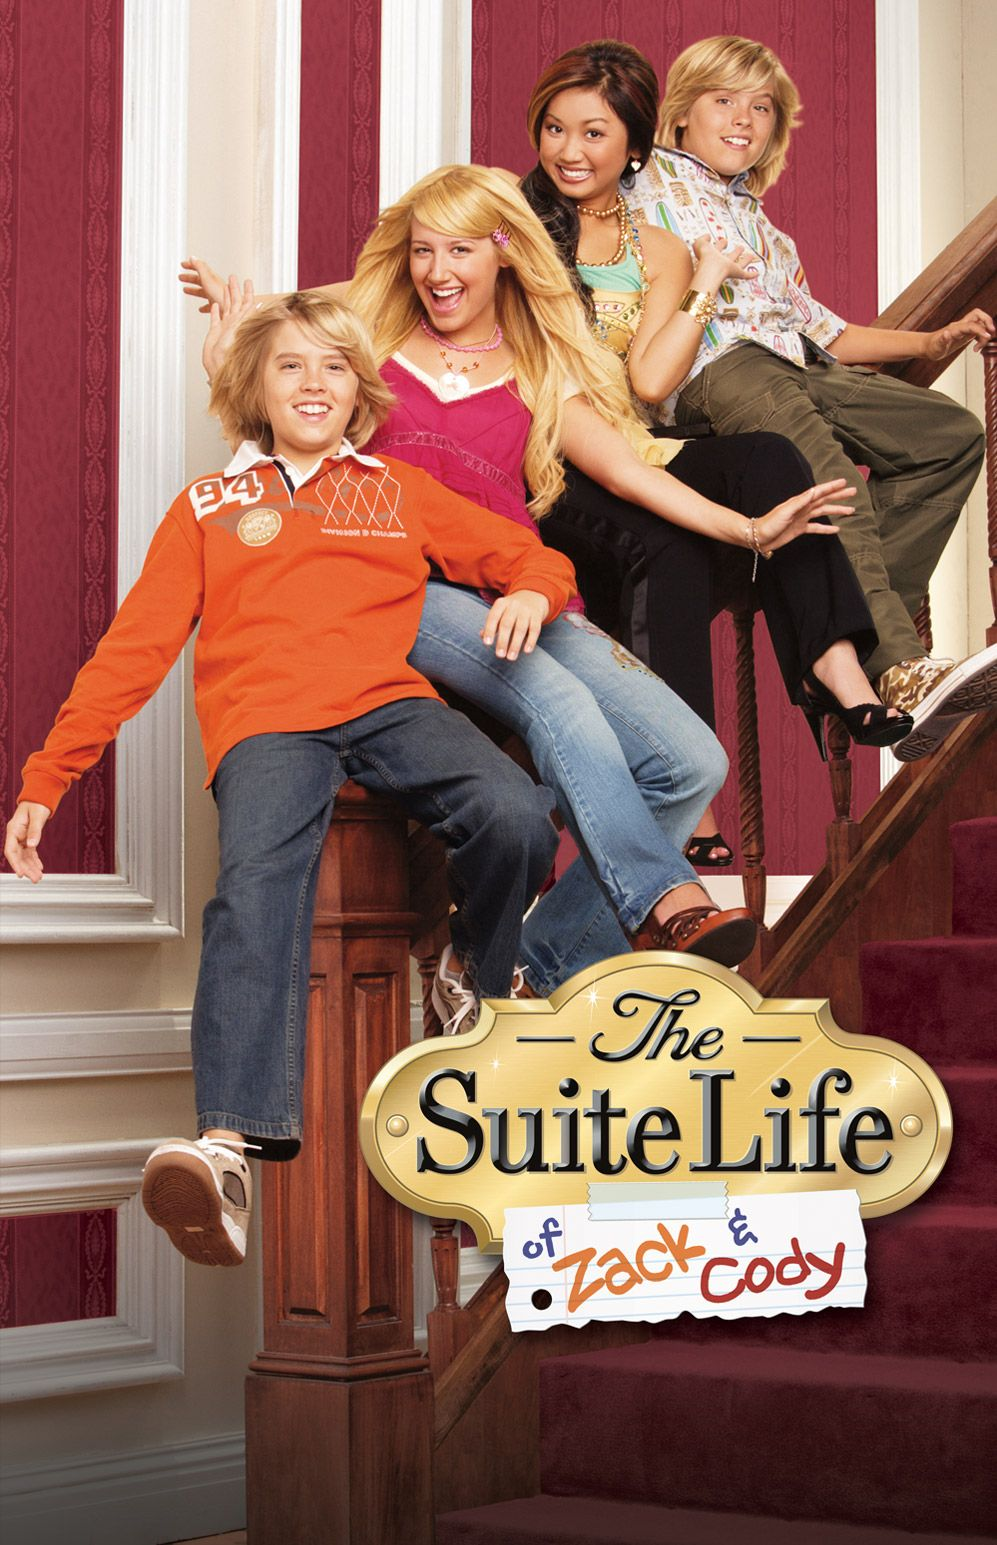 The Suite Life of Zack and Cody... Am I the only one that